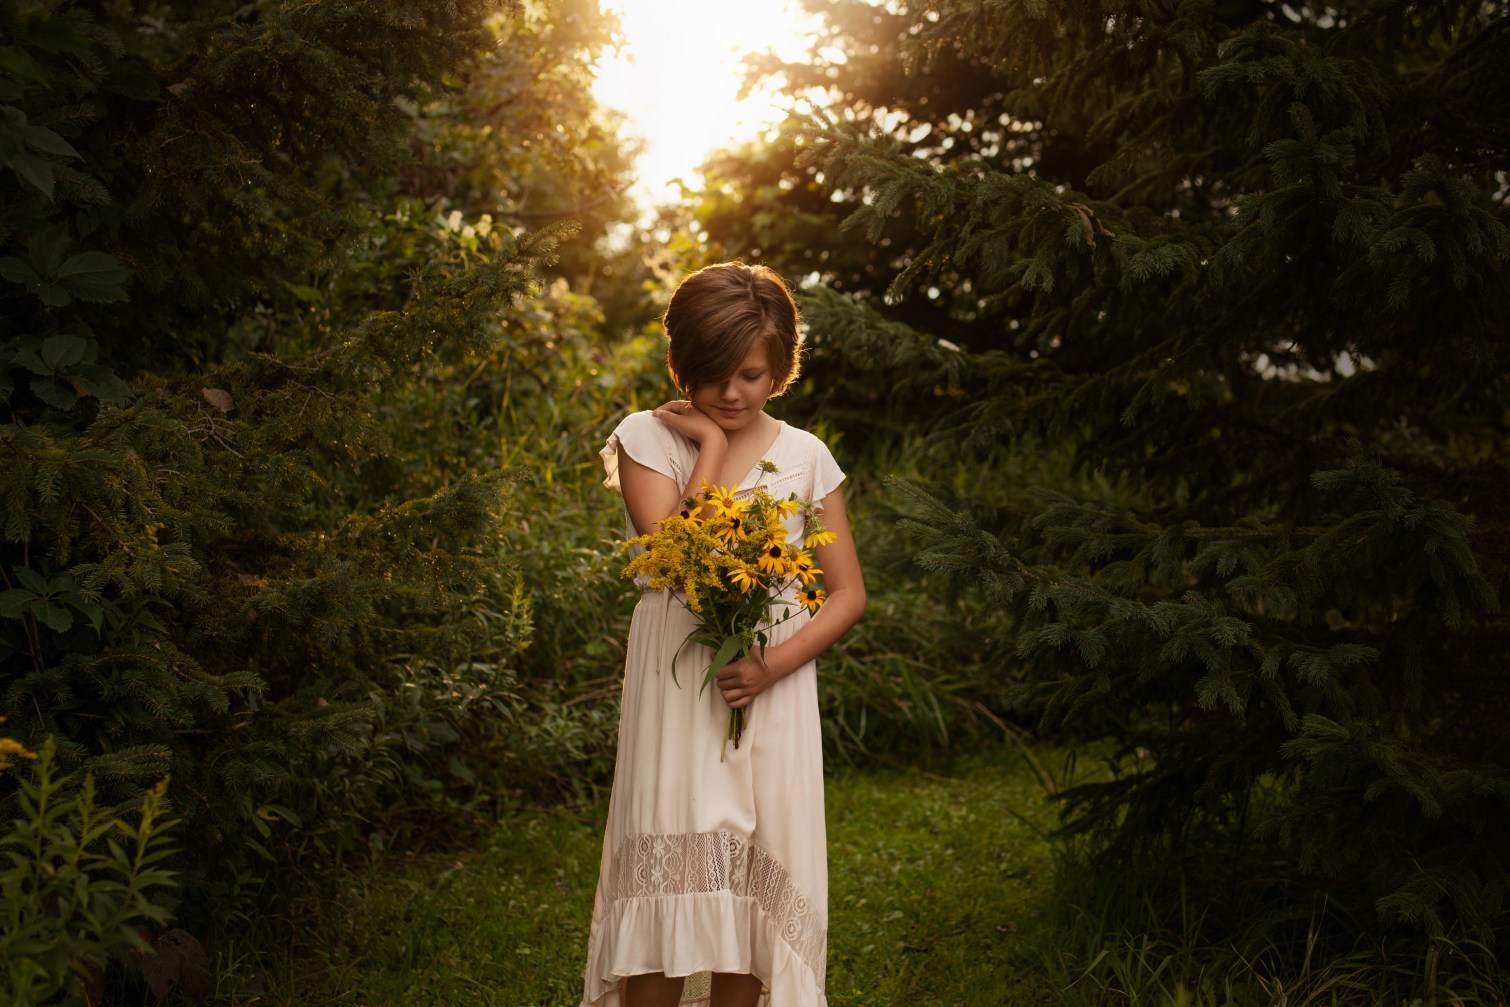 styled girl with flowers at sunset portrait by MN photographer Nicki Joachim Photography Owatonna Minnesota